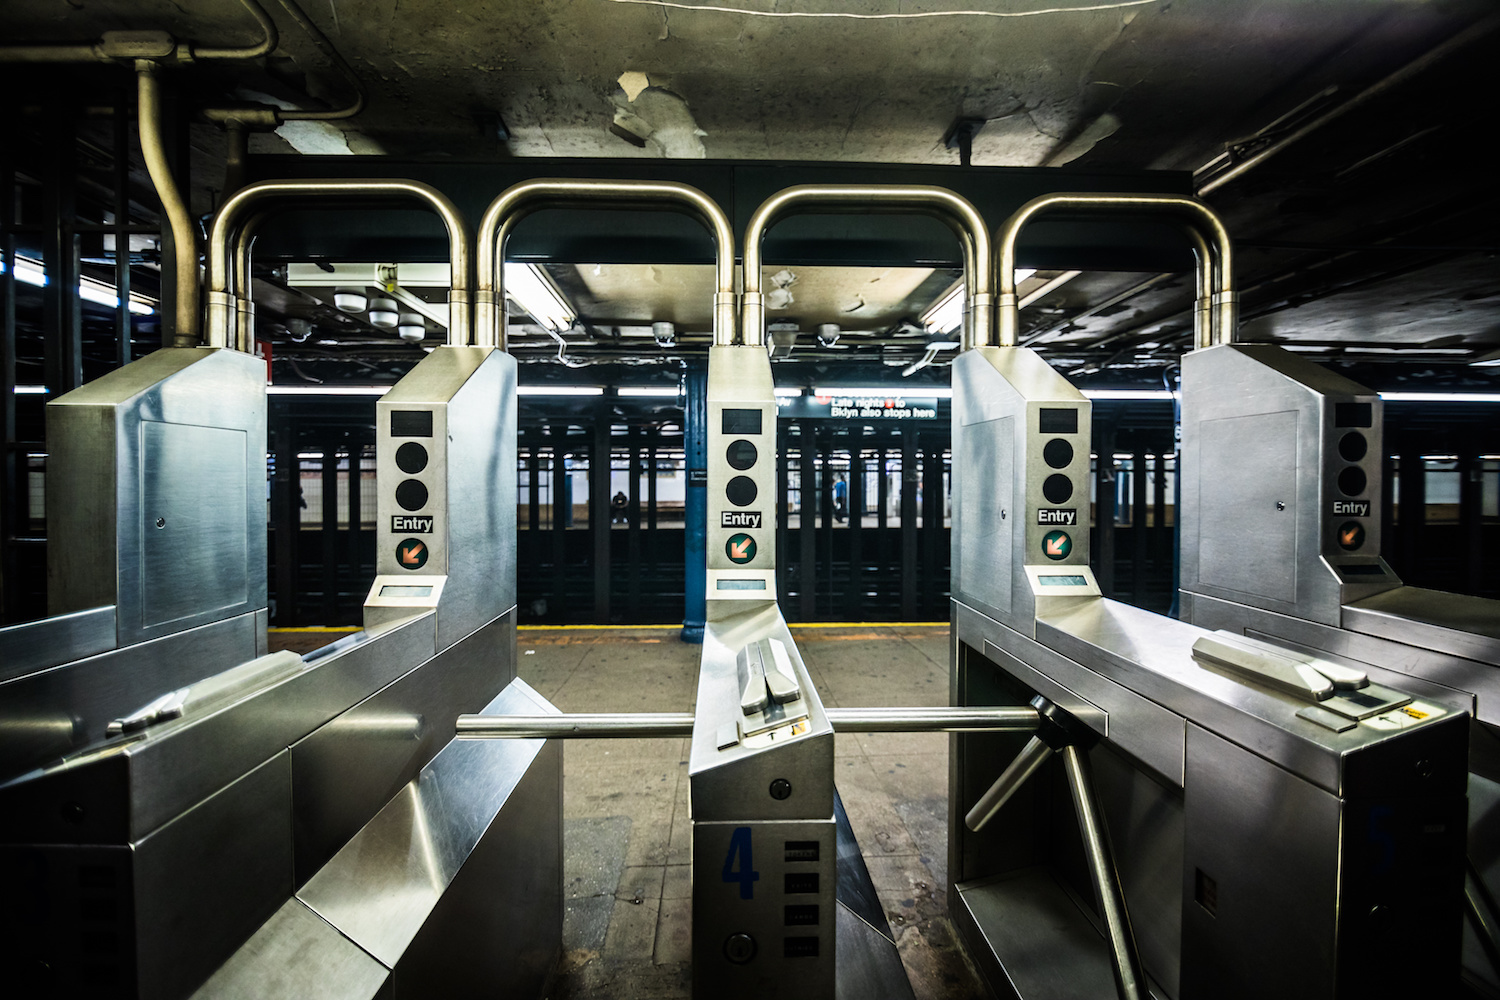 Turnstile jumping could soon be completely decriminalized in New York